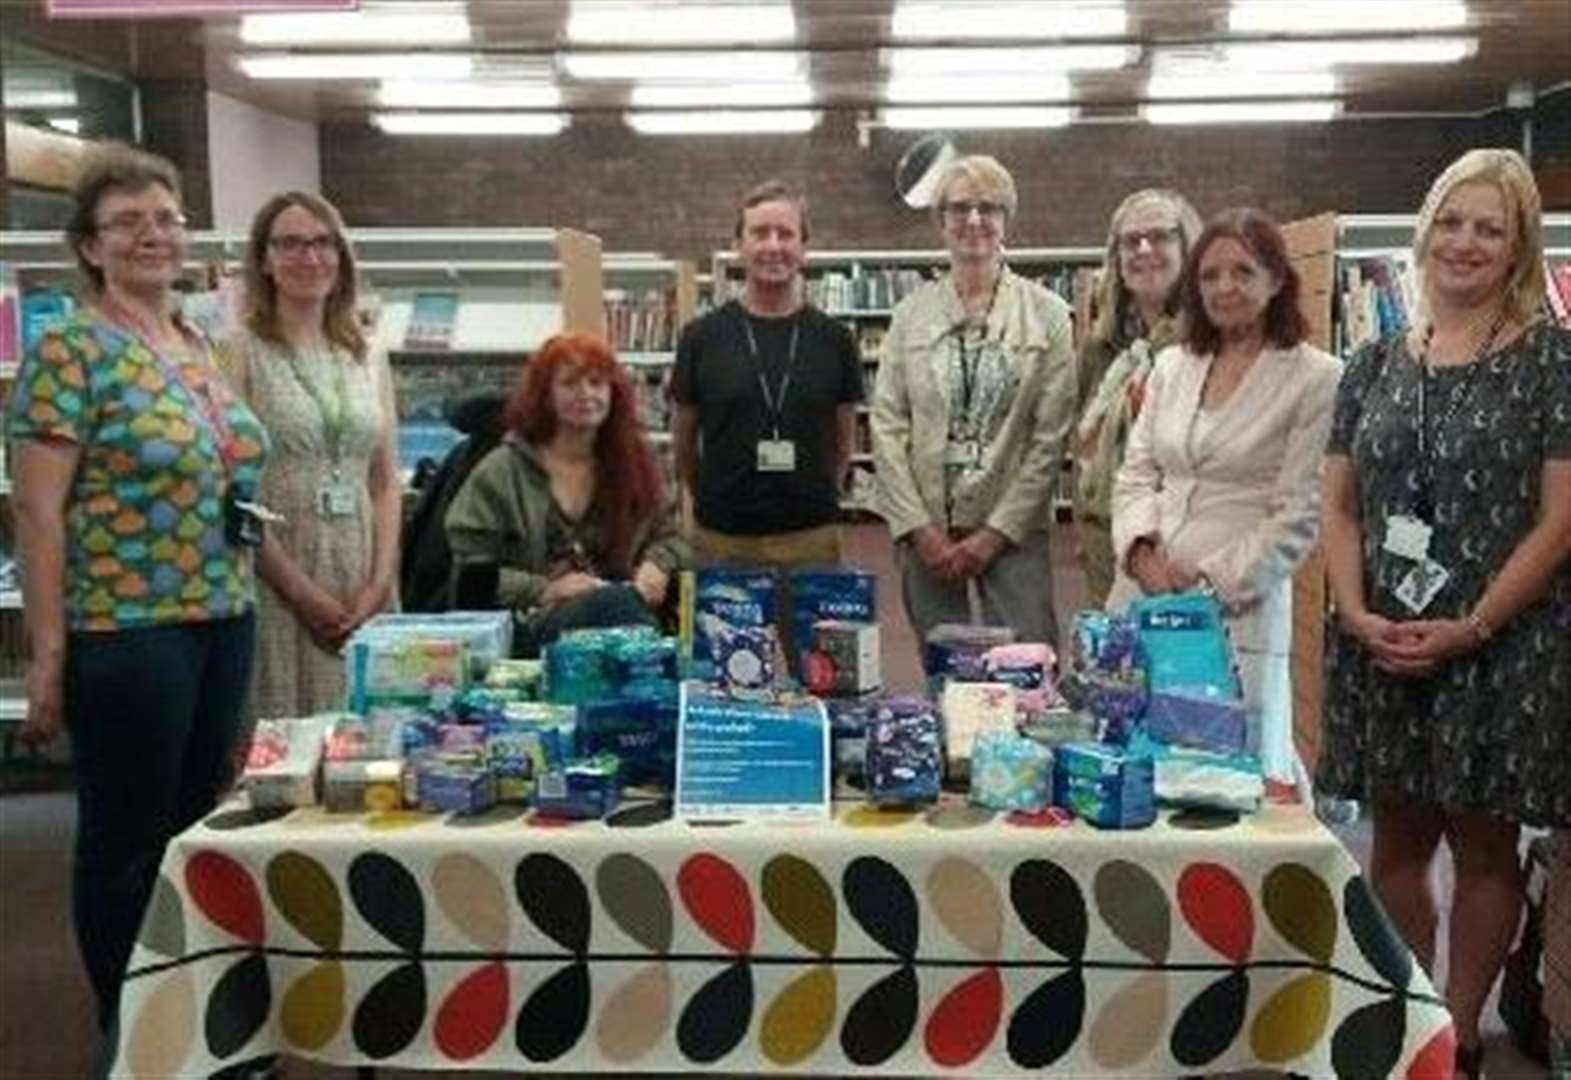 Free sanitary products available at Arbury Court library to combat 'period poverty'